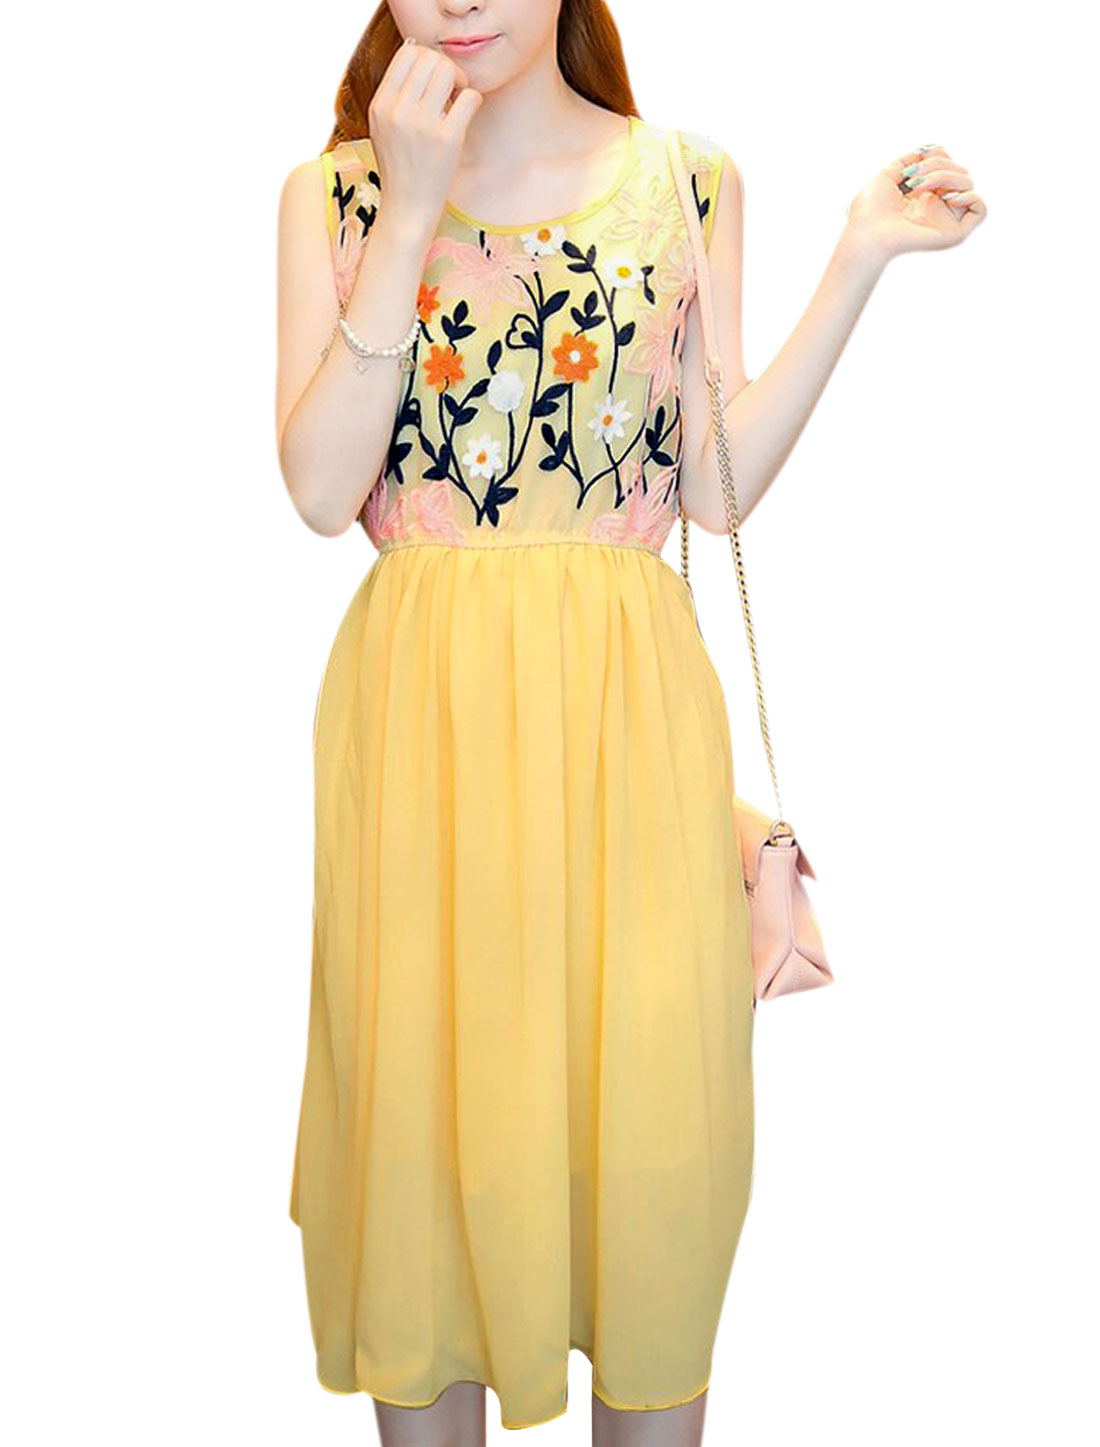 Ladies Round Neck Sleeveless Crochet Flower Hollow Back Light Yellow Dress S